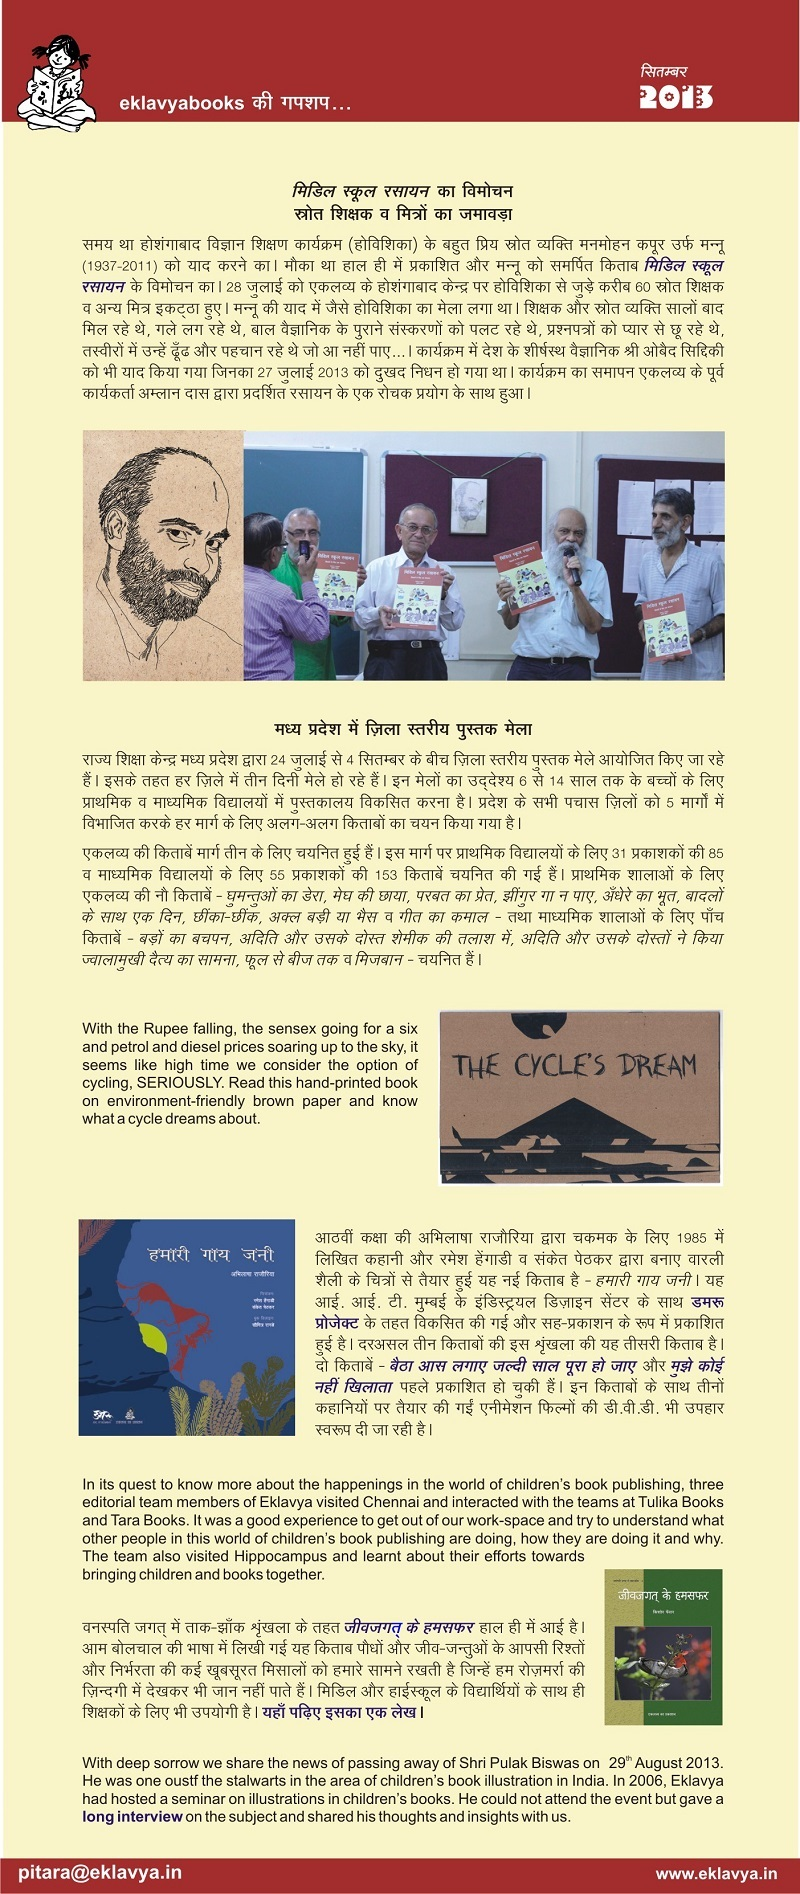 eklavyabooks ki gupshup - Newsletter May 2013. Enable image for viewing newsletter